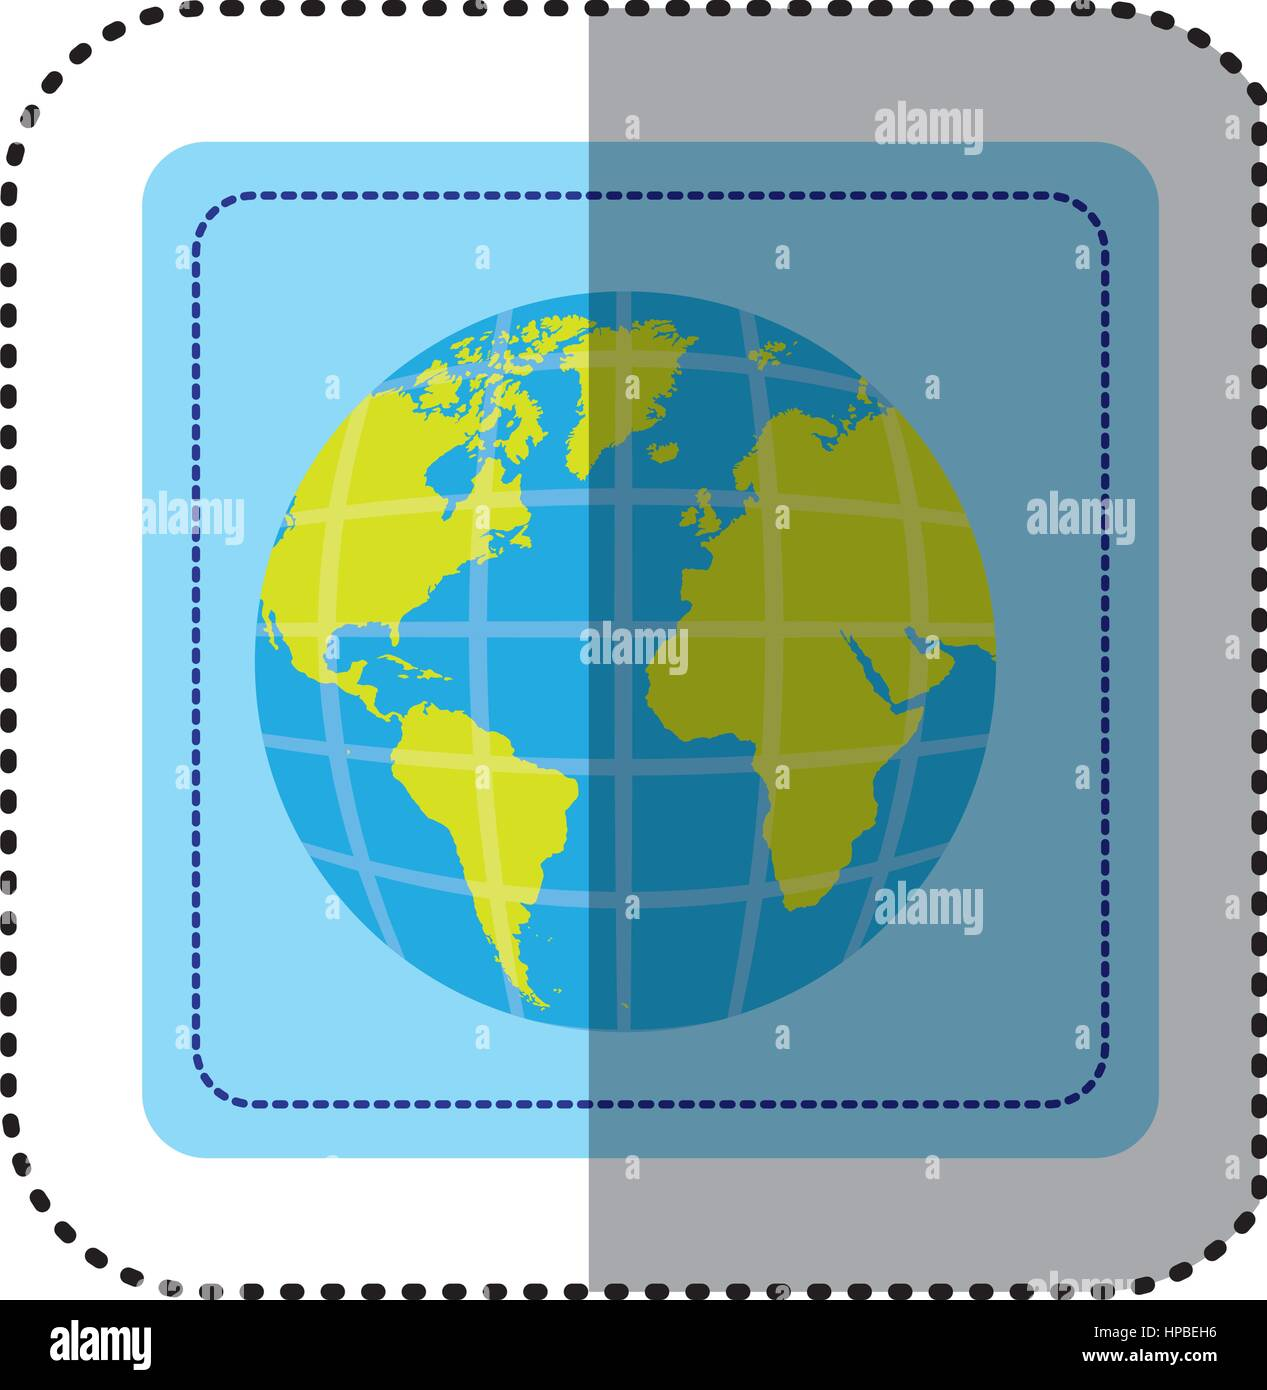 Sticker square button earth world map with continents in 3d stock sticker square button earth world map with continents in 3d gumiabroncs Choice Image